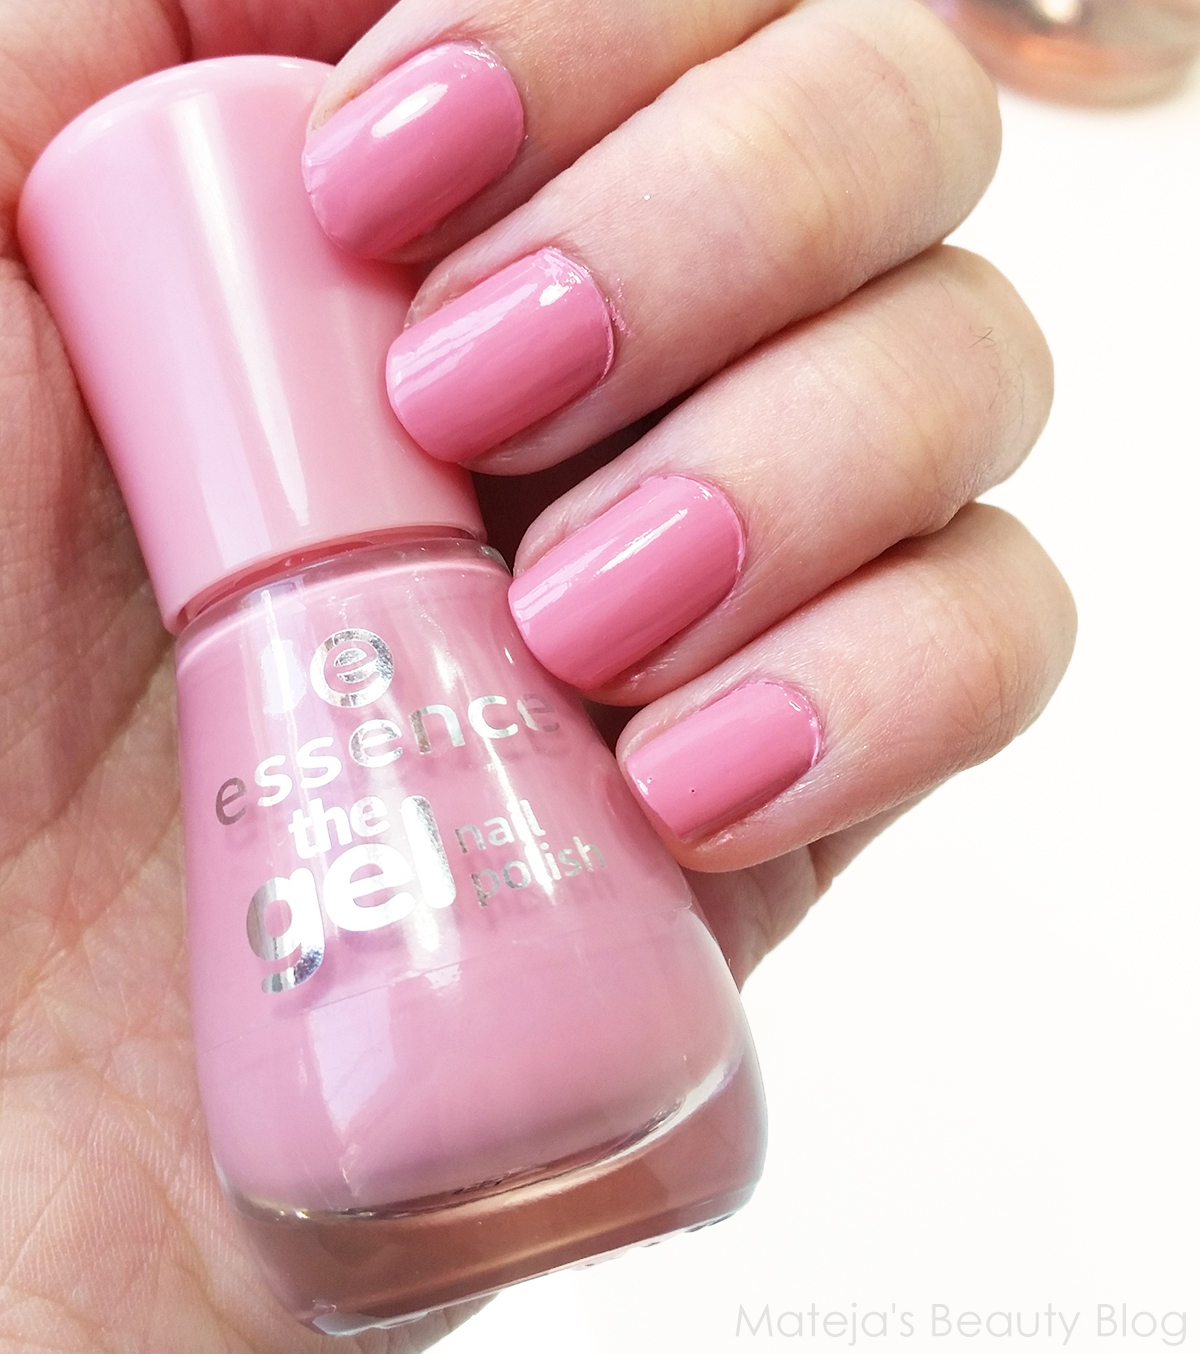 Essence The Gel Nail Polish 13 Forgive Me - Mateja's ...